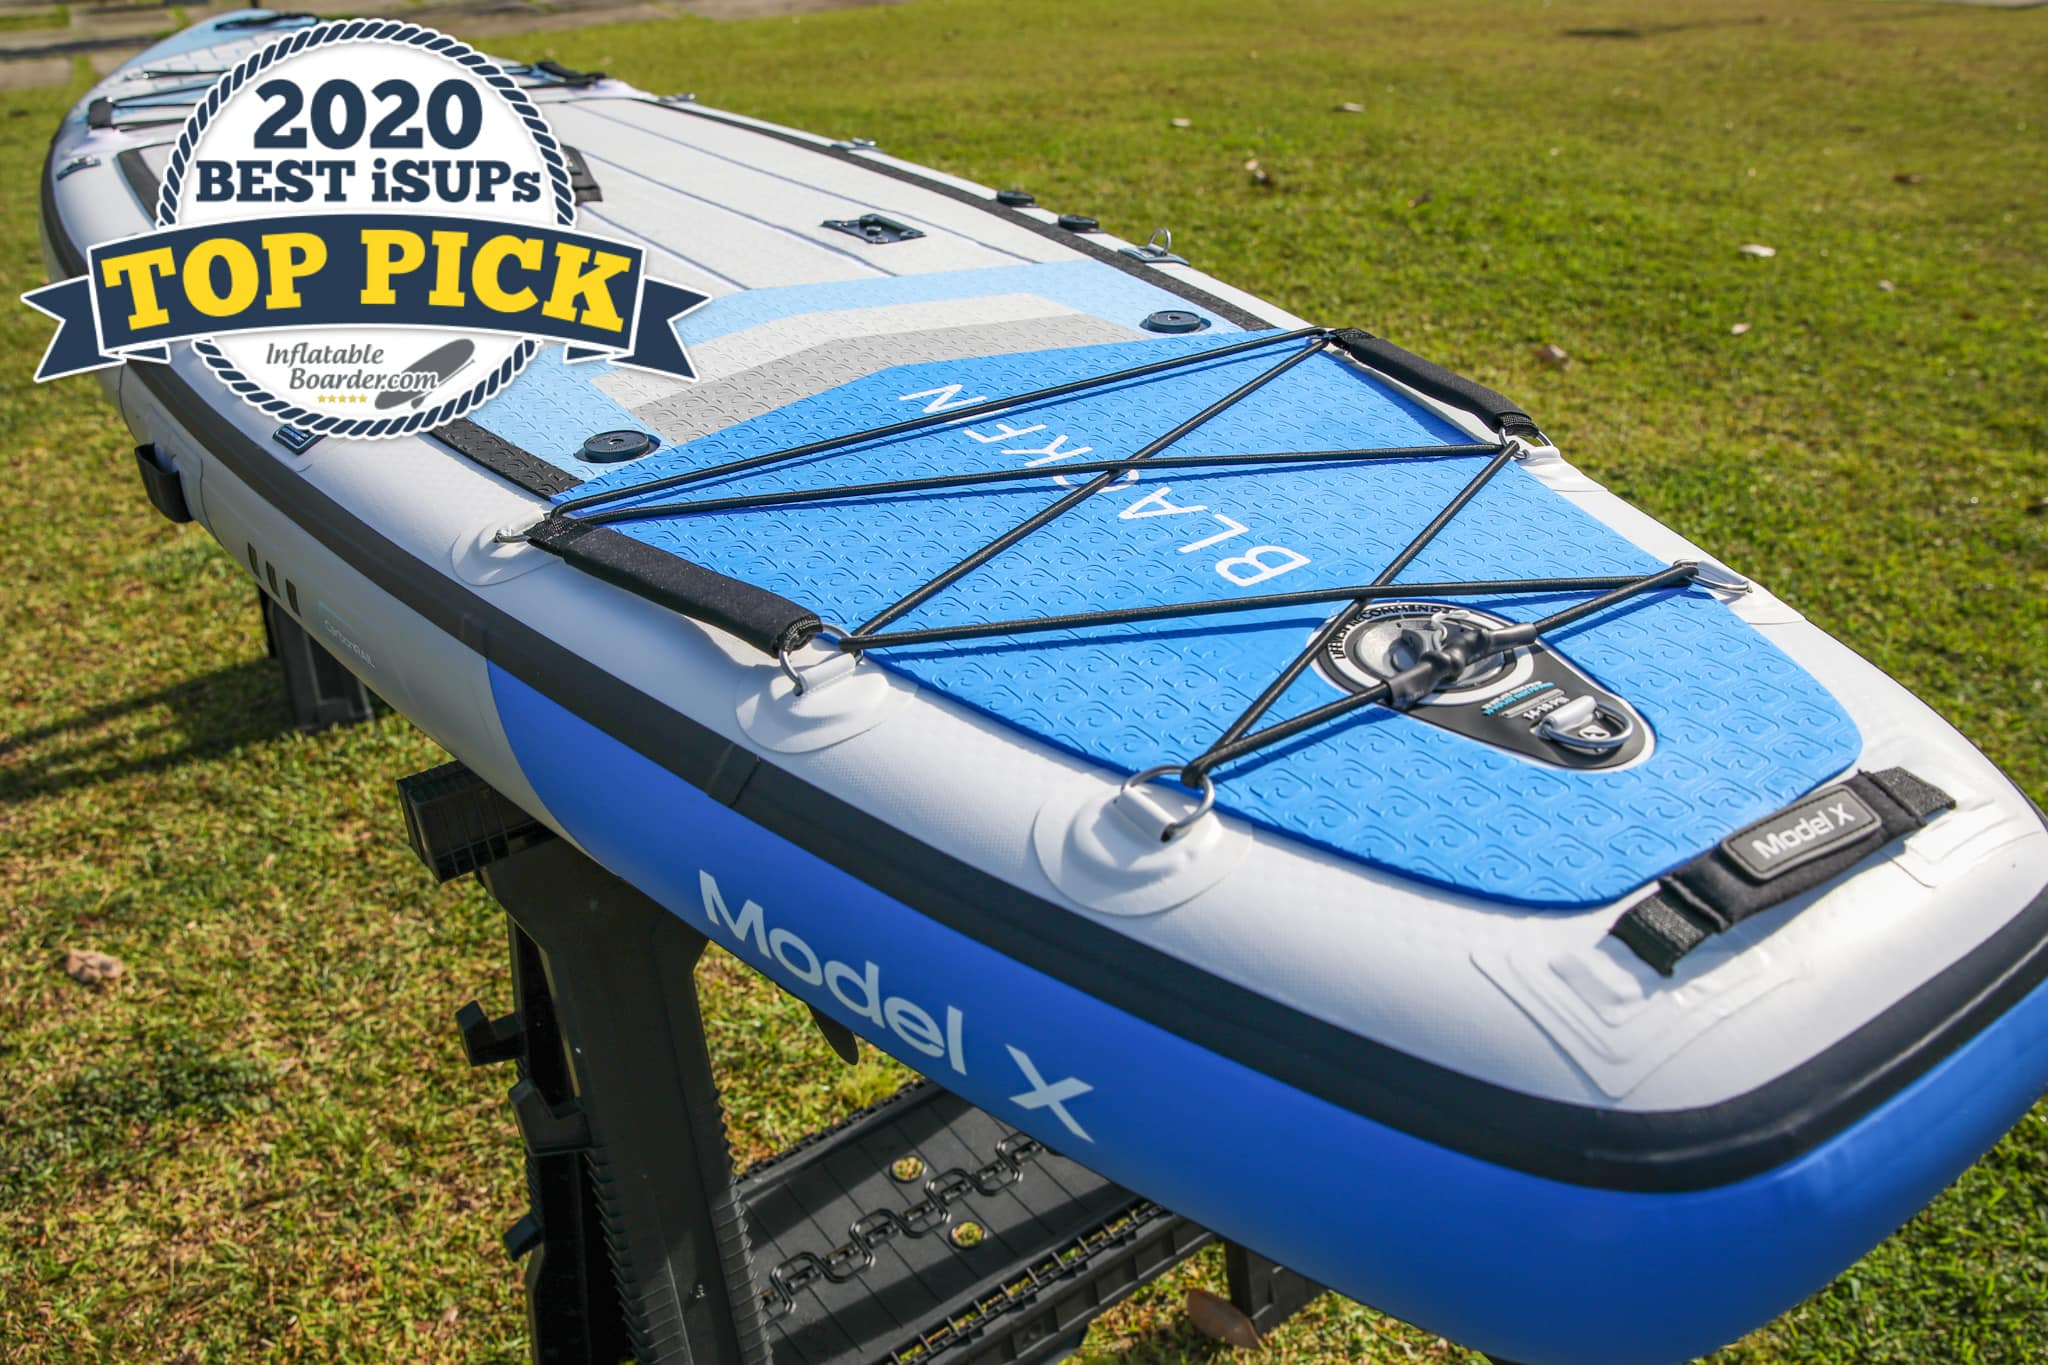 """Blackfin Model X paddle board review - a badge reads """"2020 Best iSUPS TOP PICK"""""""